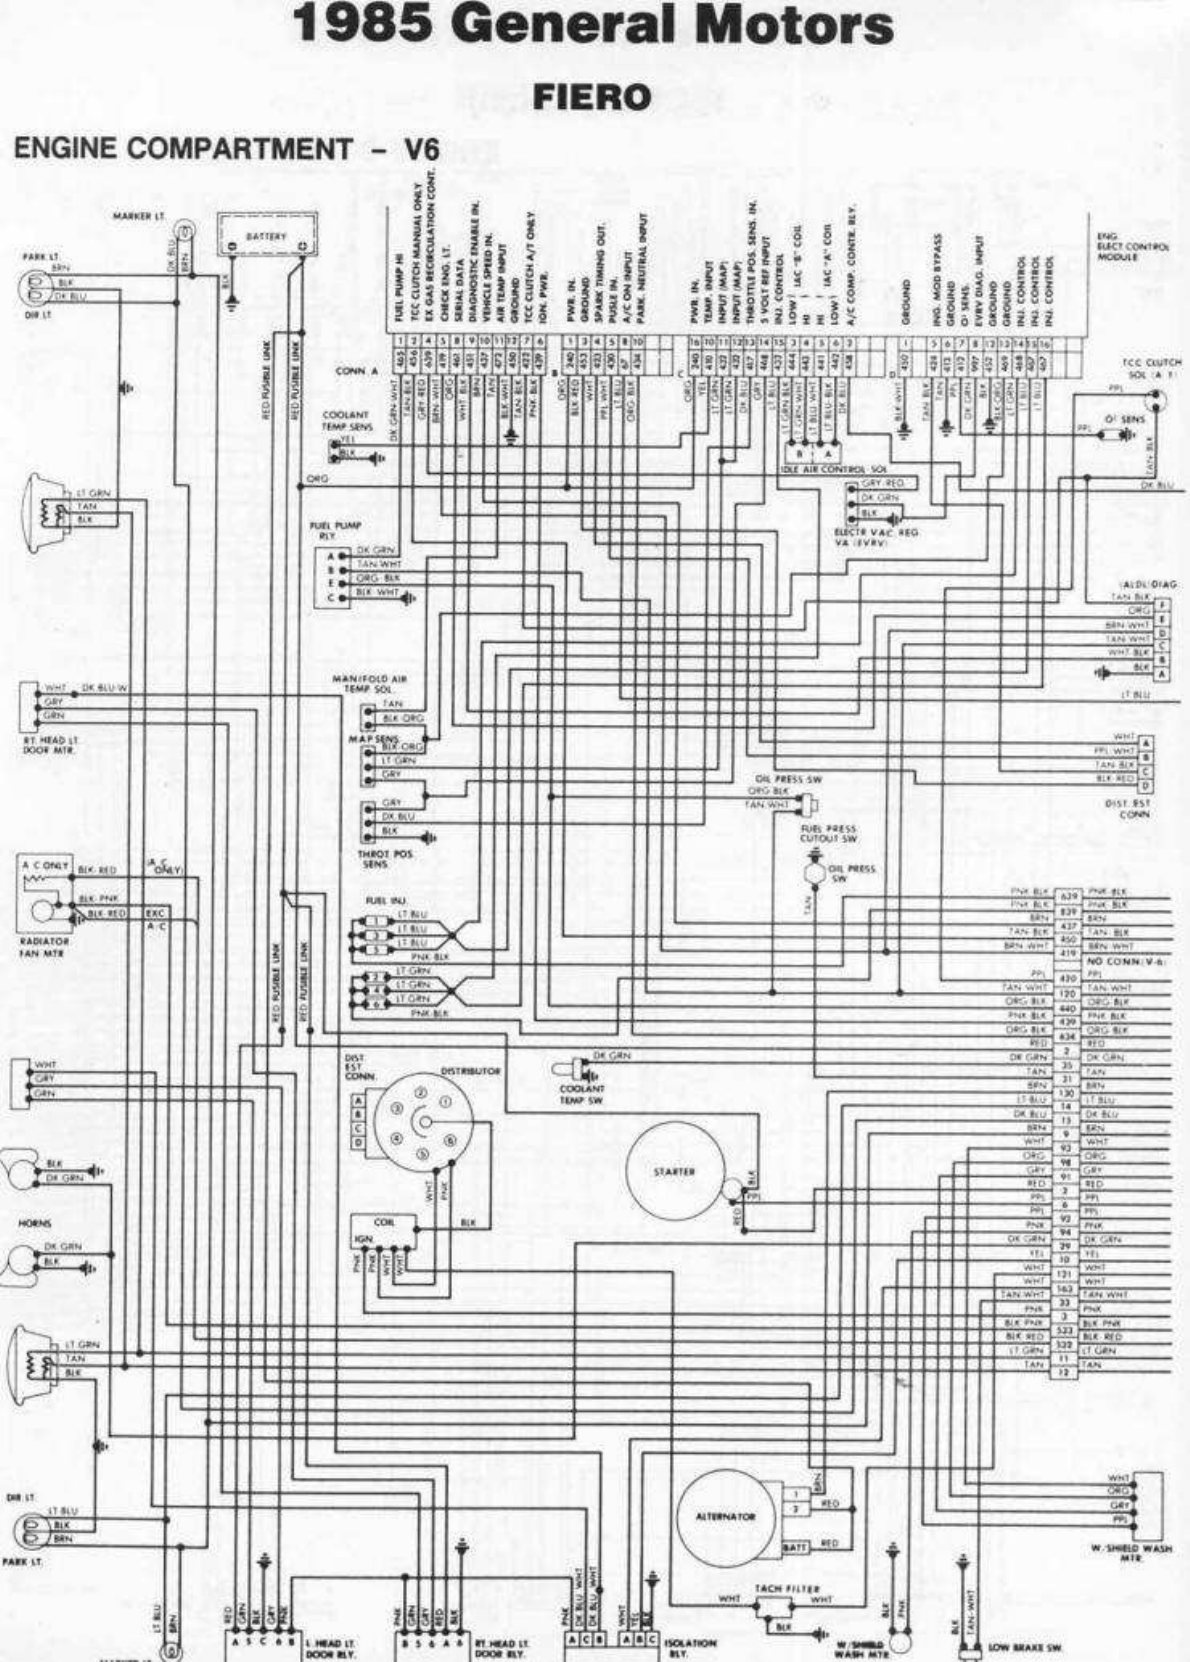 1985 Pontiac Wiring Diagram - Do you want to download wiring ... on